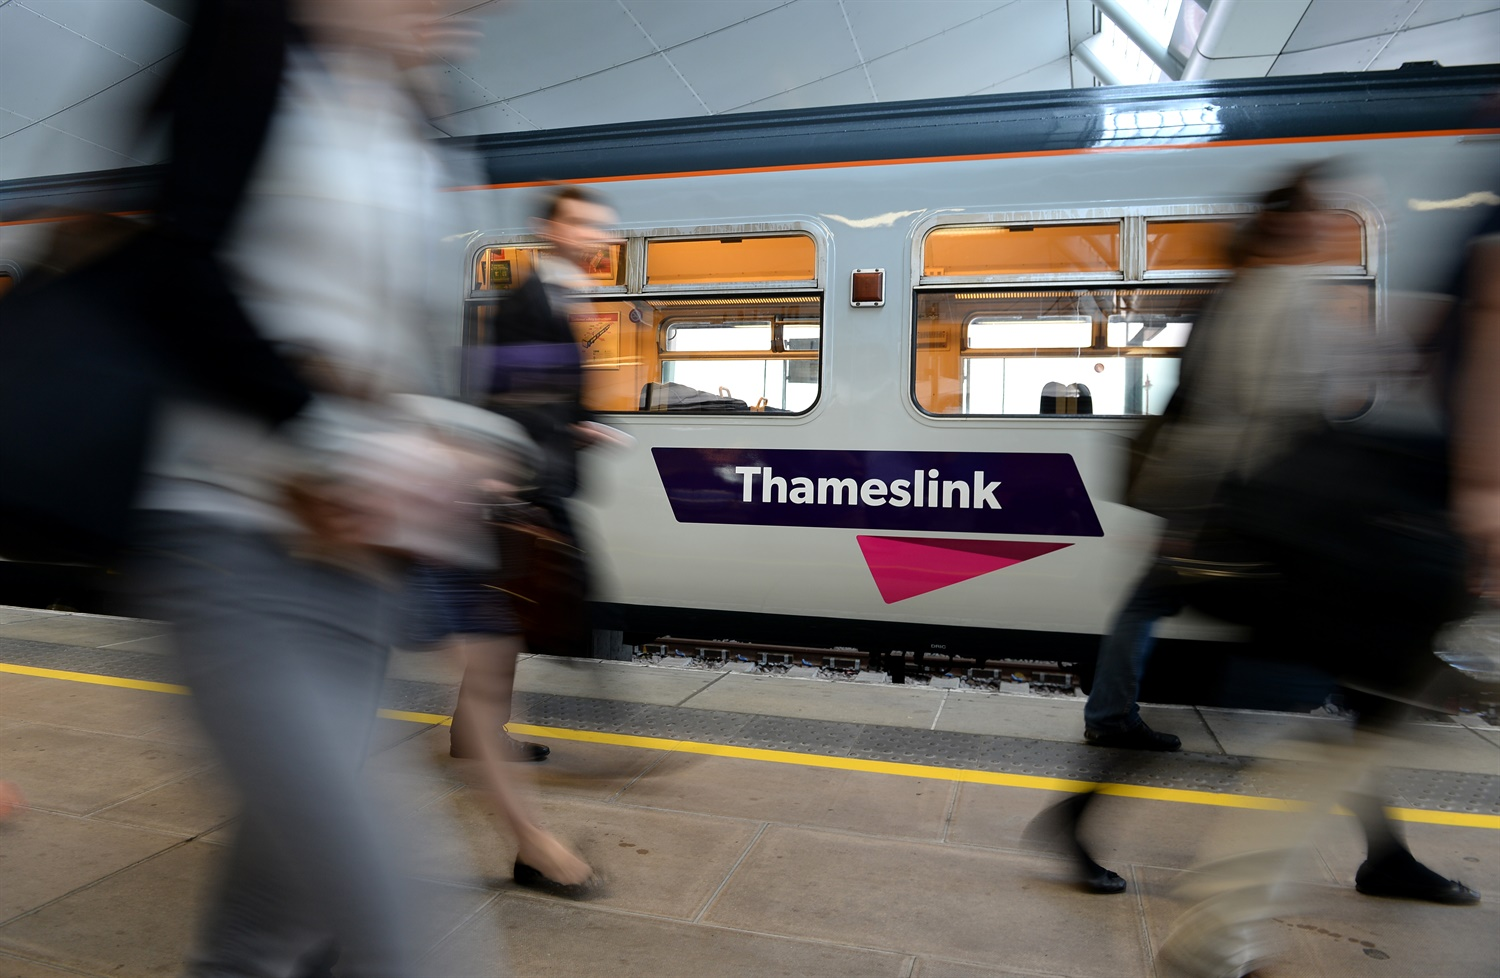 Thameslink passengers 'not getting service promised'